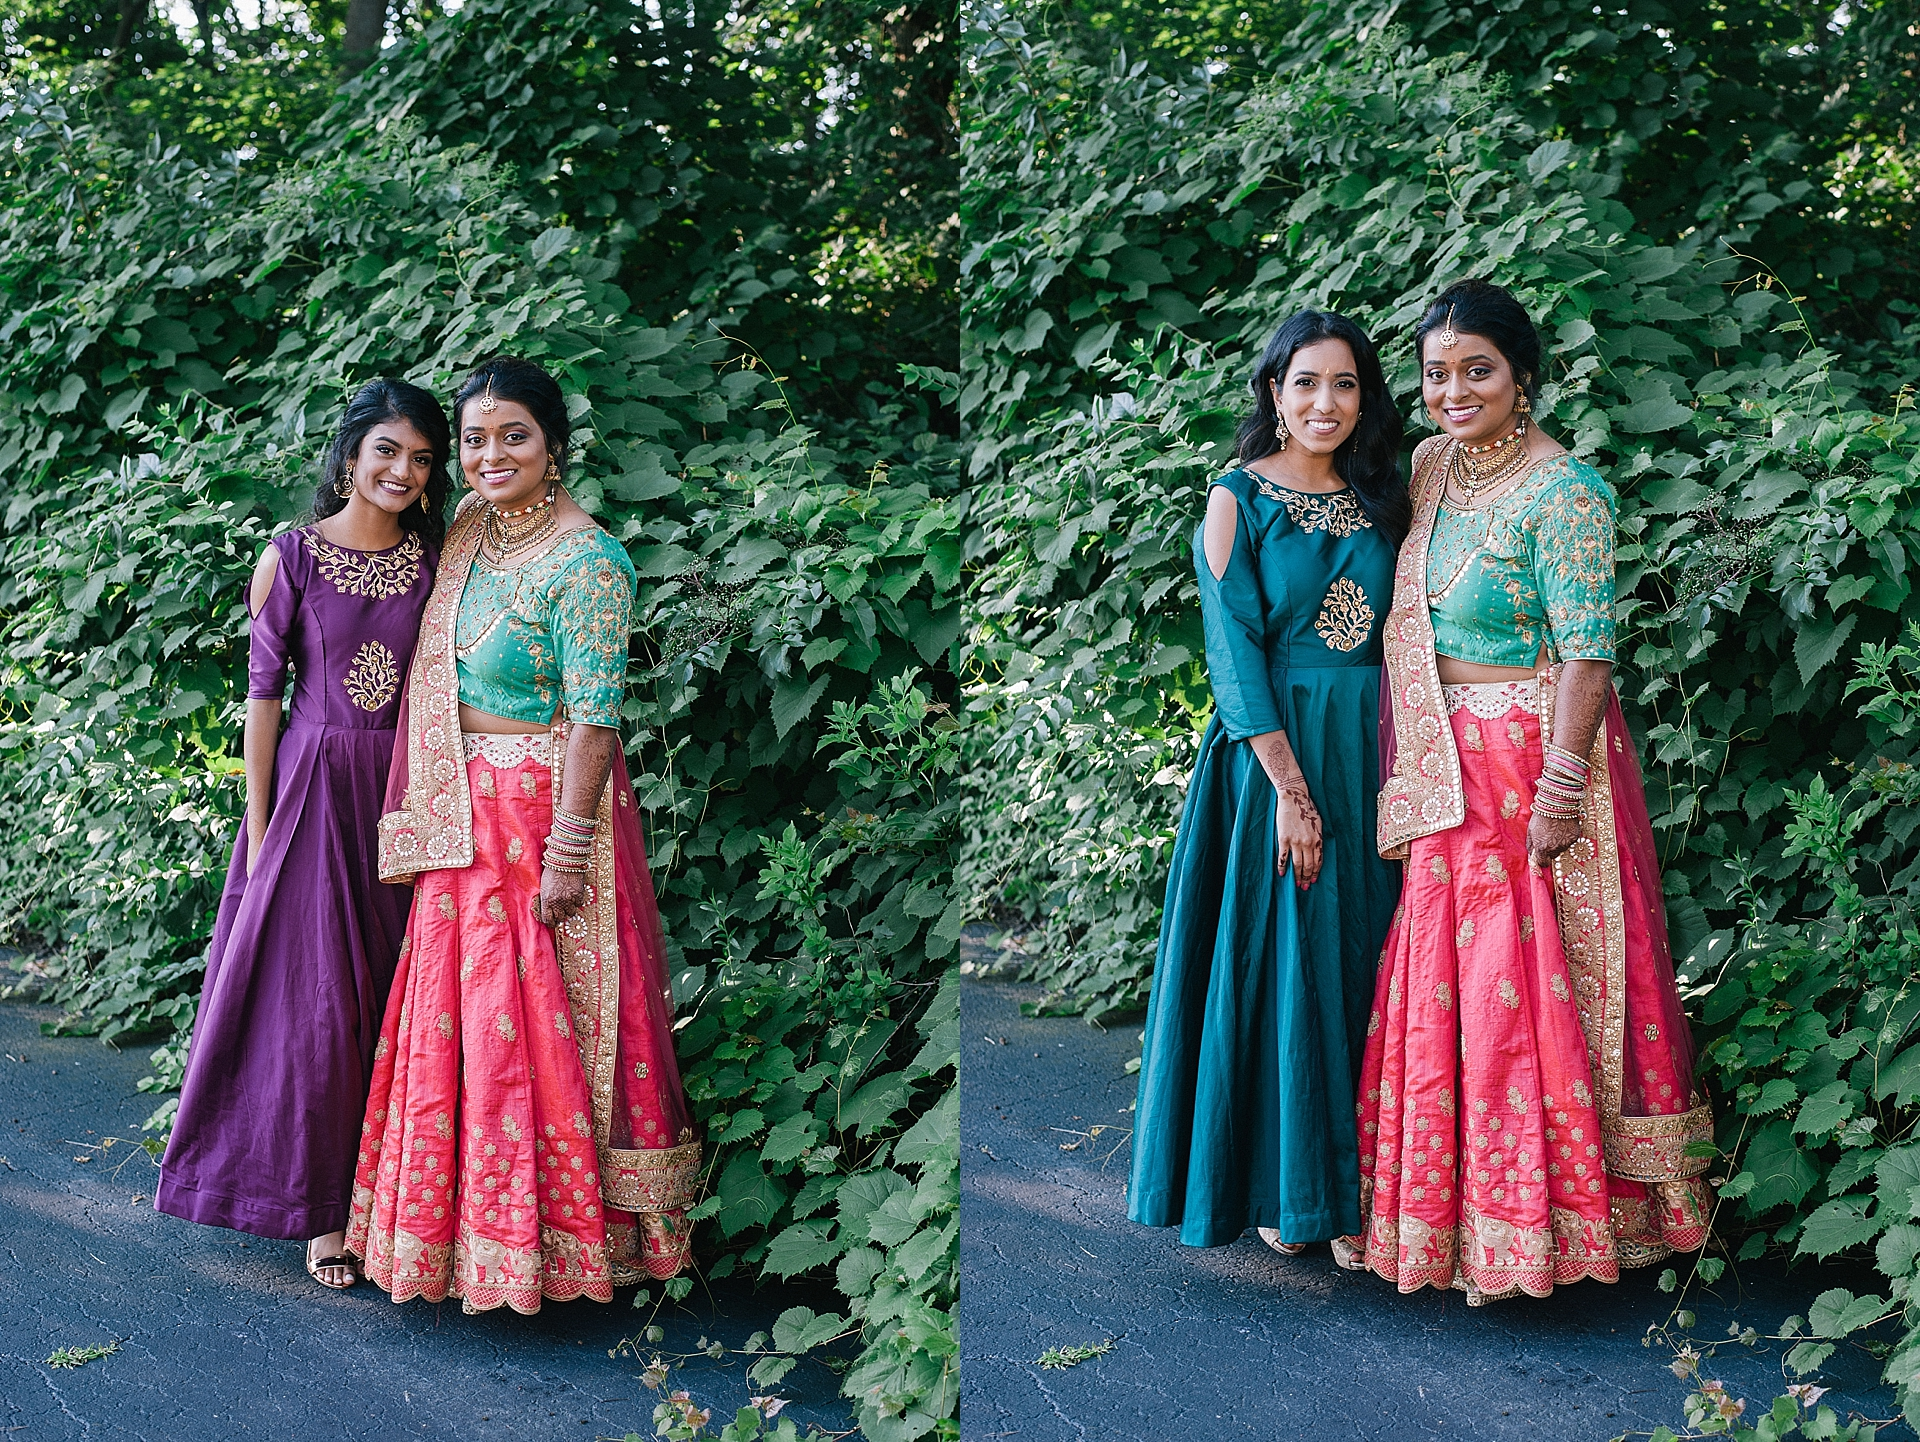 Prexa_Harry_Columbus_Crown_Plaza_Indian_Wedding0039.jpg